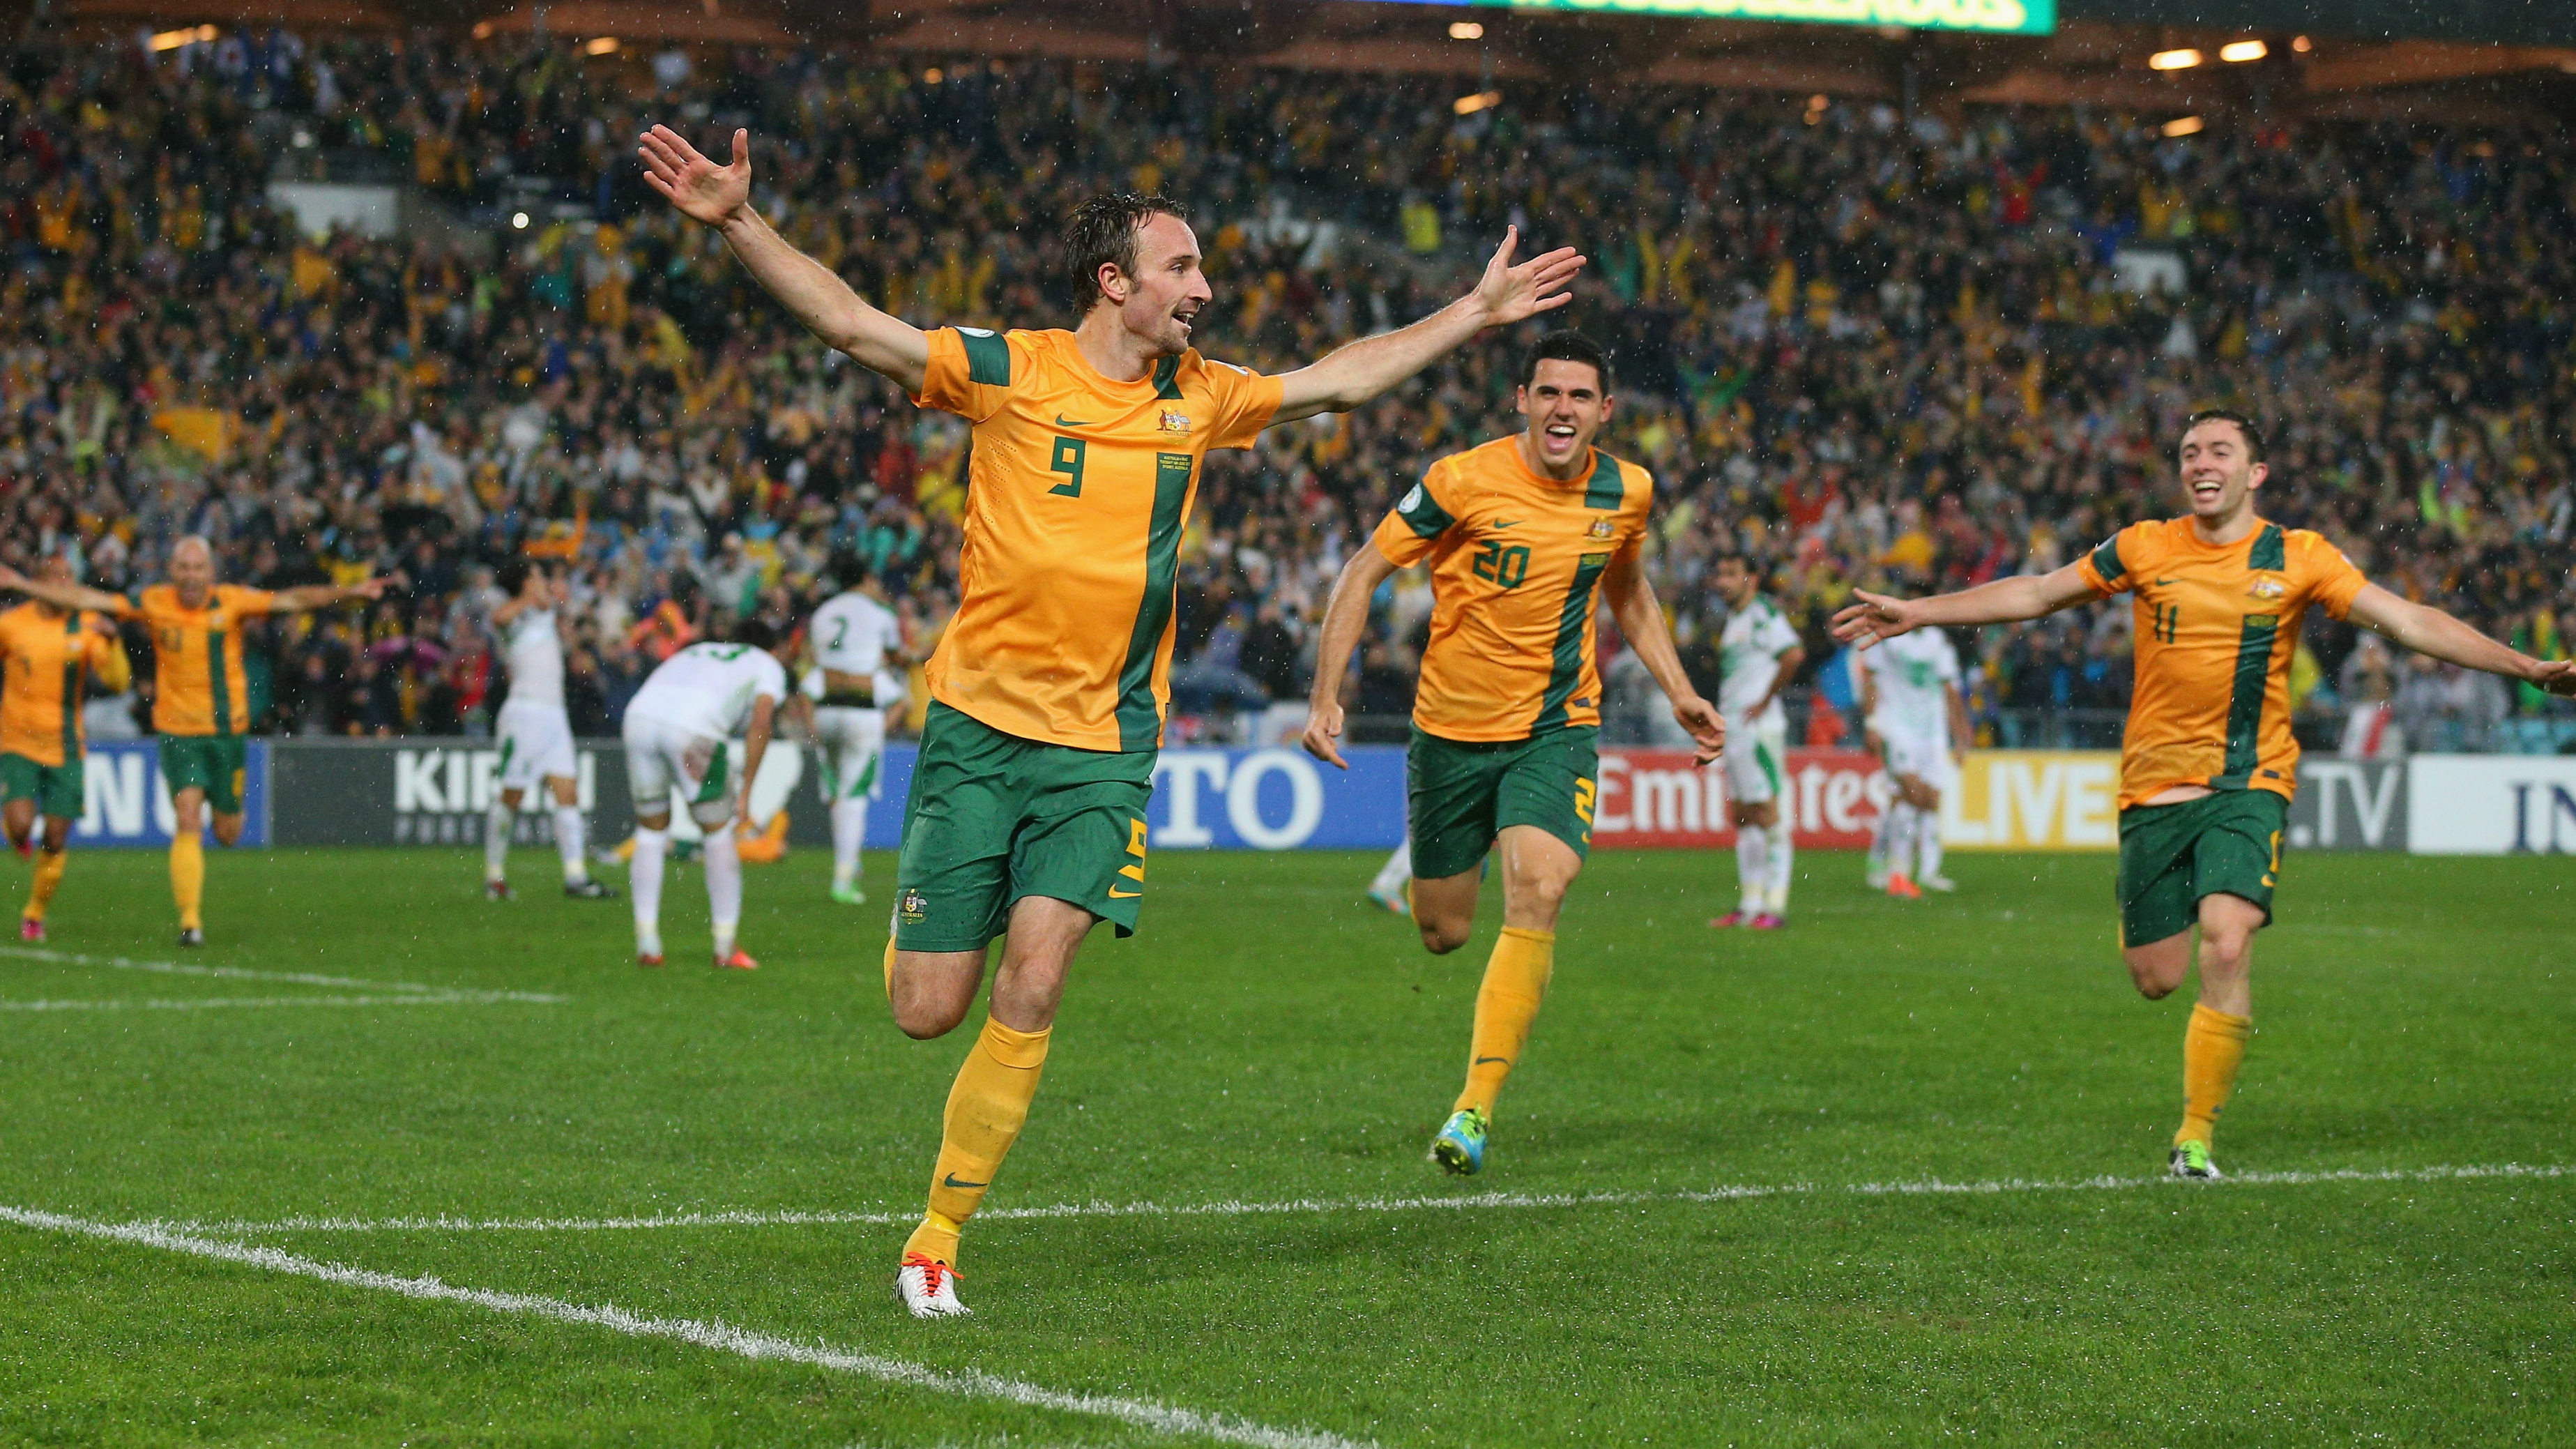 Josh Kennedy's late goal against Iraq in Sydney booked Australia's berth at the 2014 FIFA World Cup in Brazil.